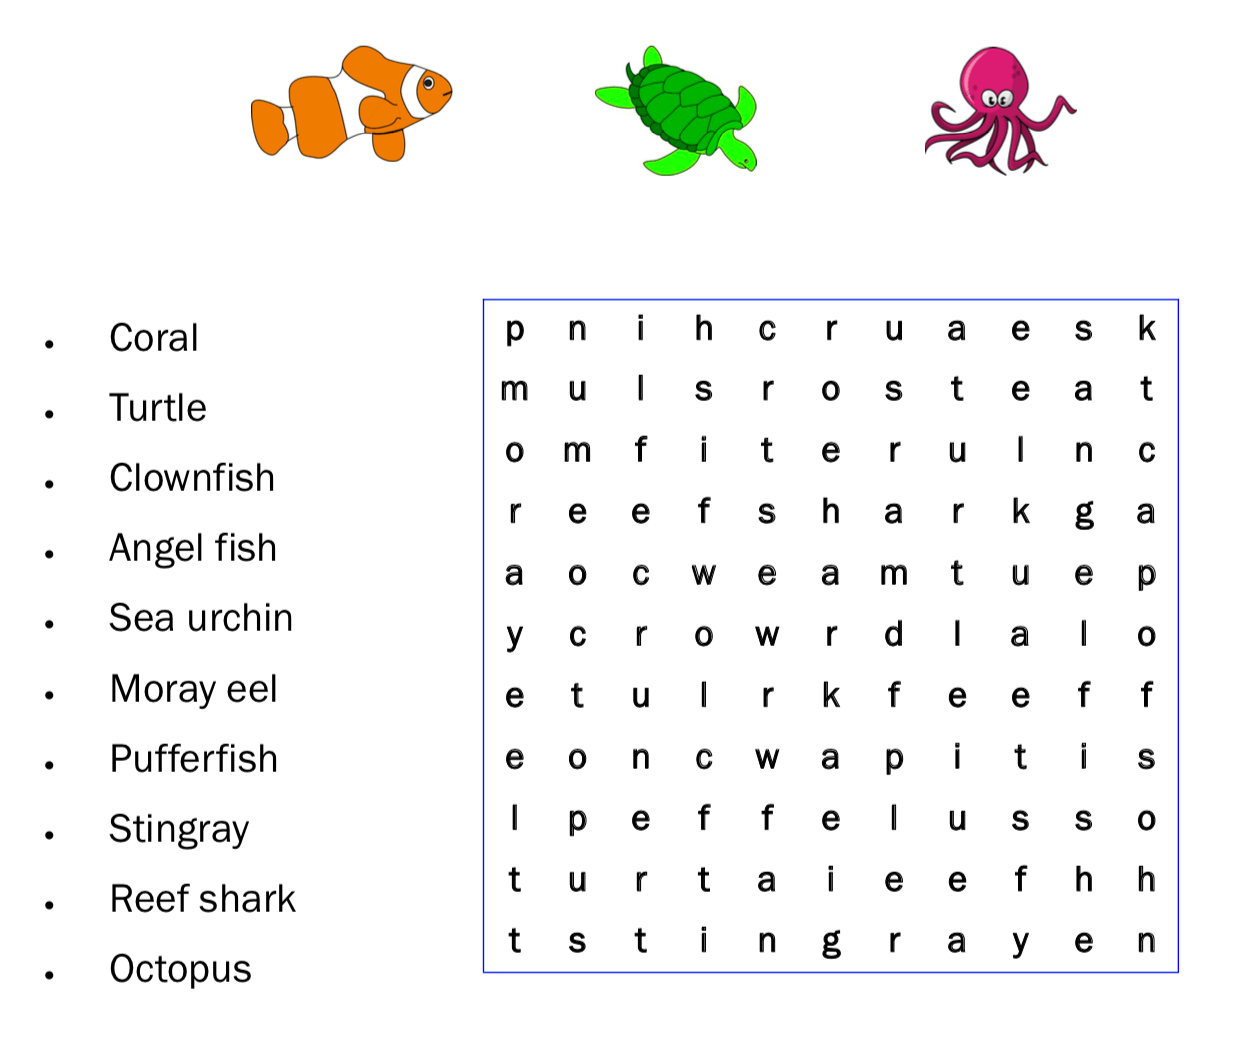 Coral Reef Wordsearch